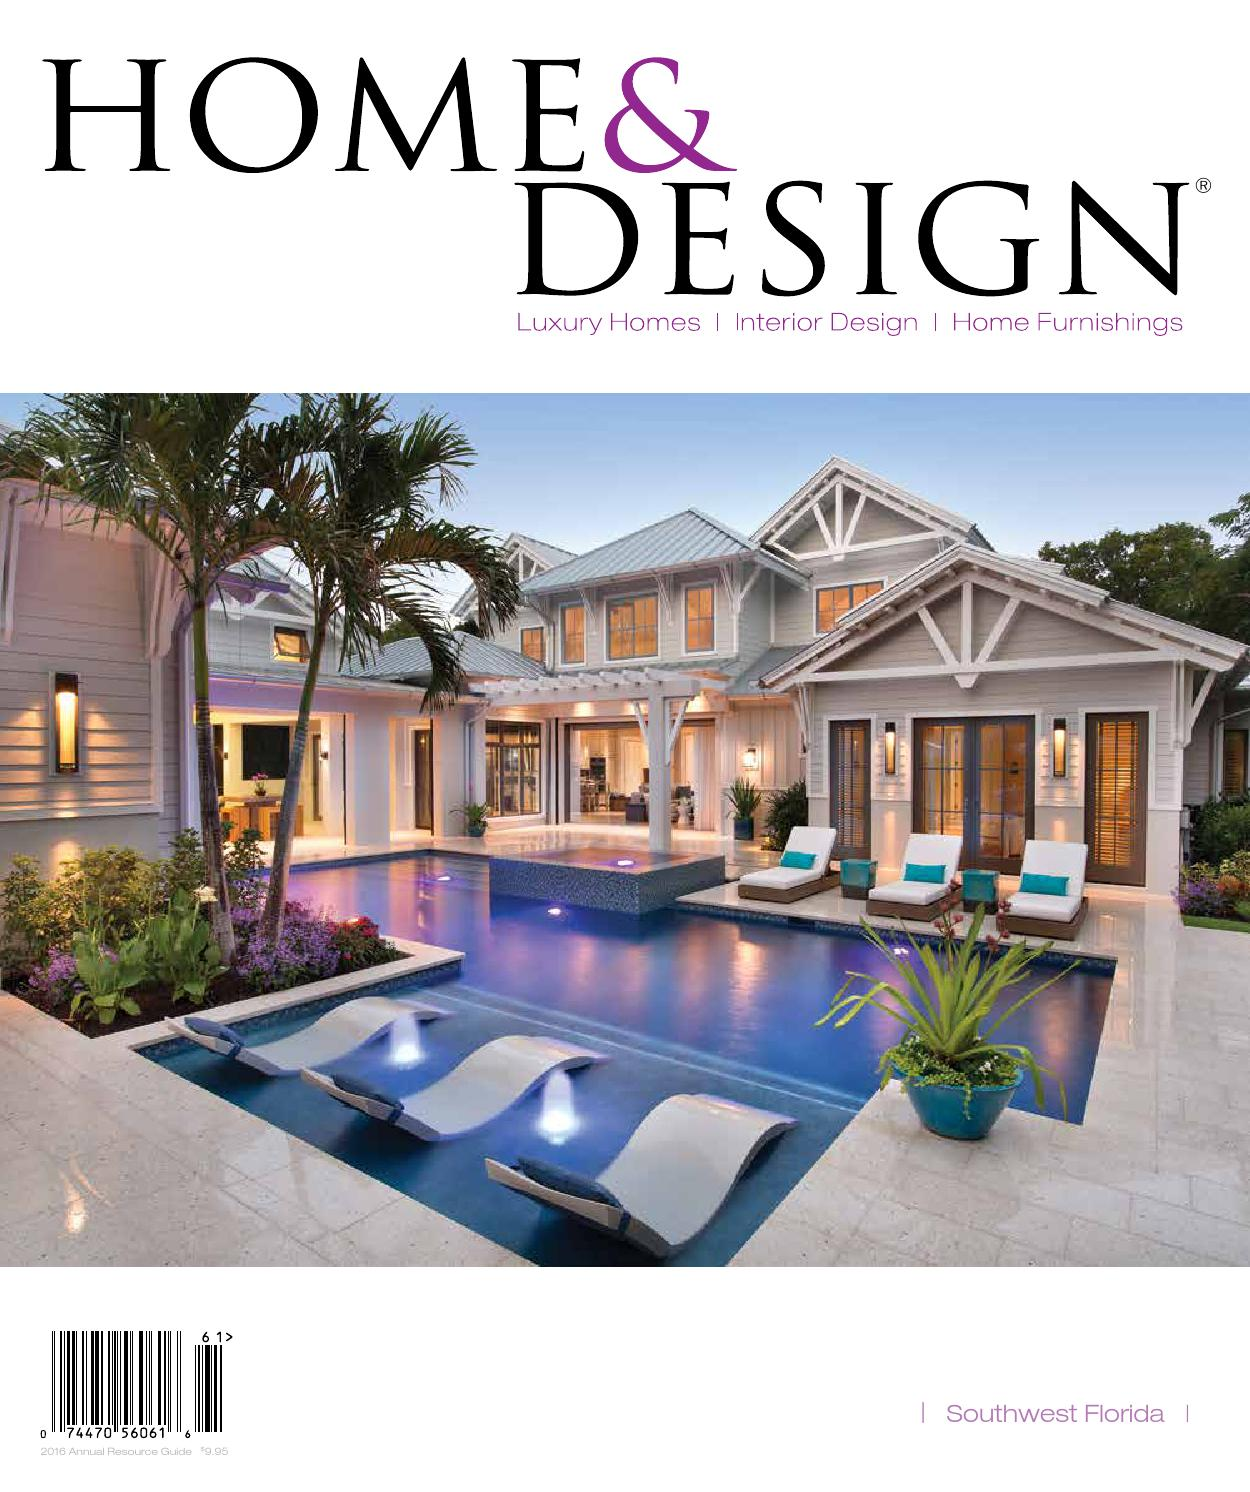 Home design magazine annual resource guide 2016 for Home design resources